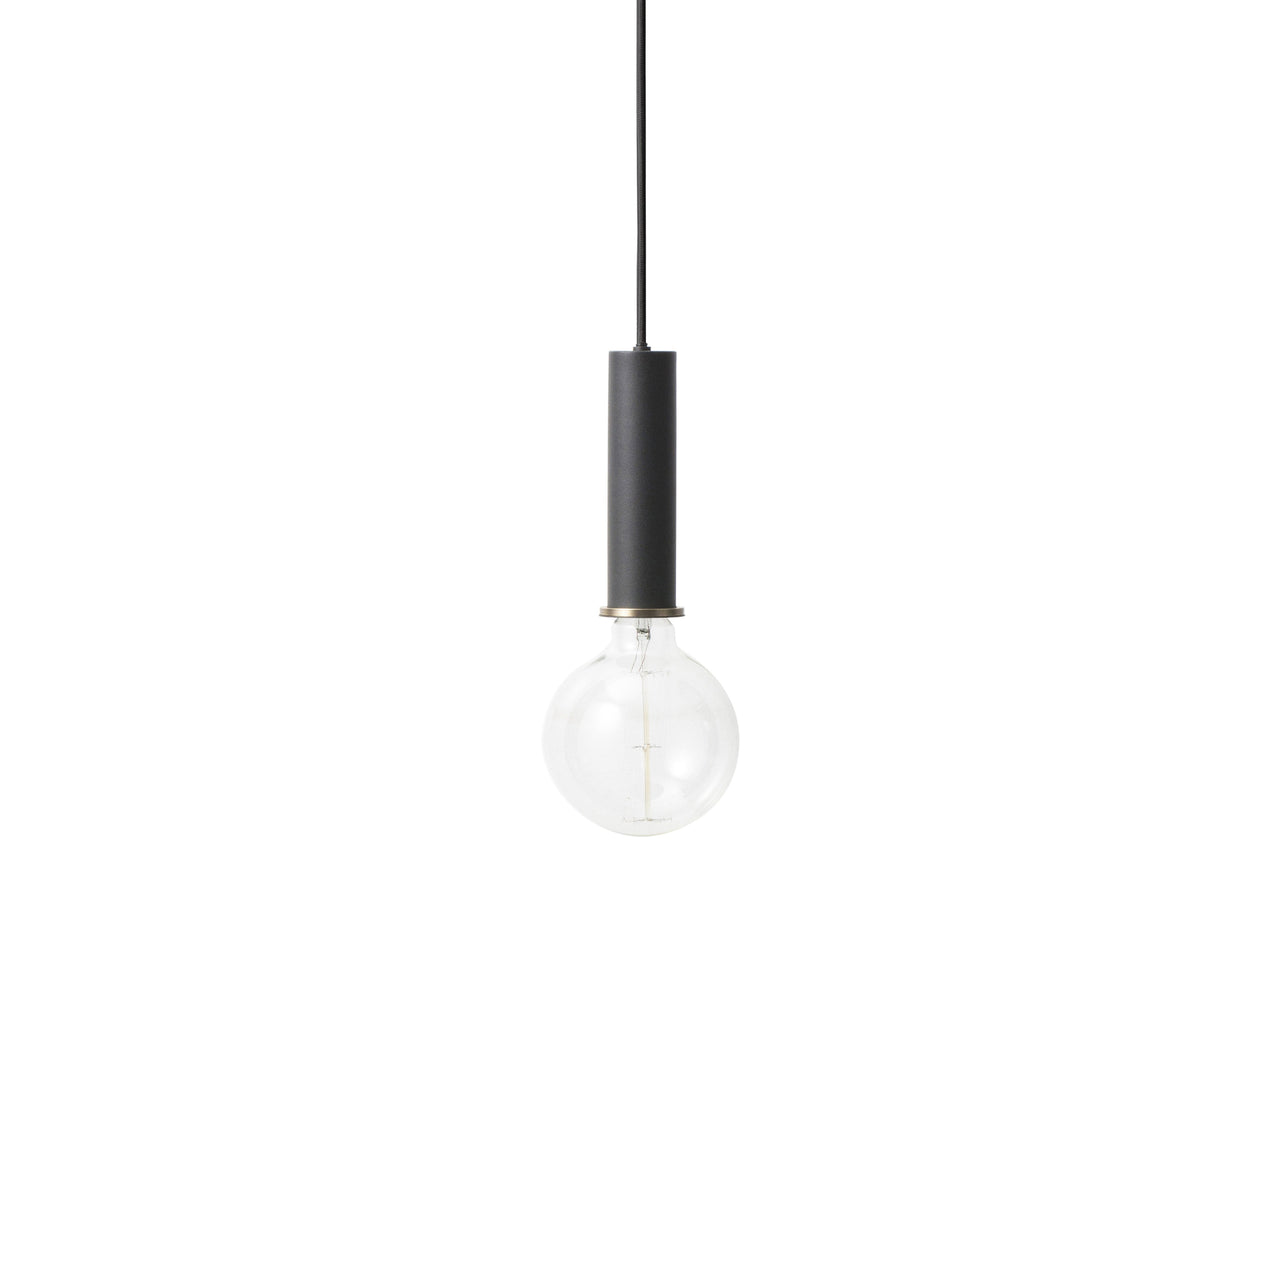 Collect Lighting: Pendant + High + Black